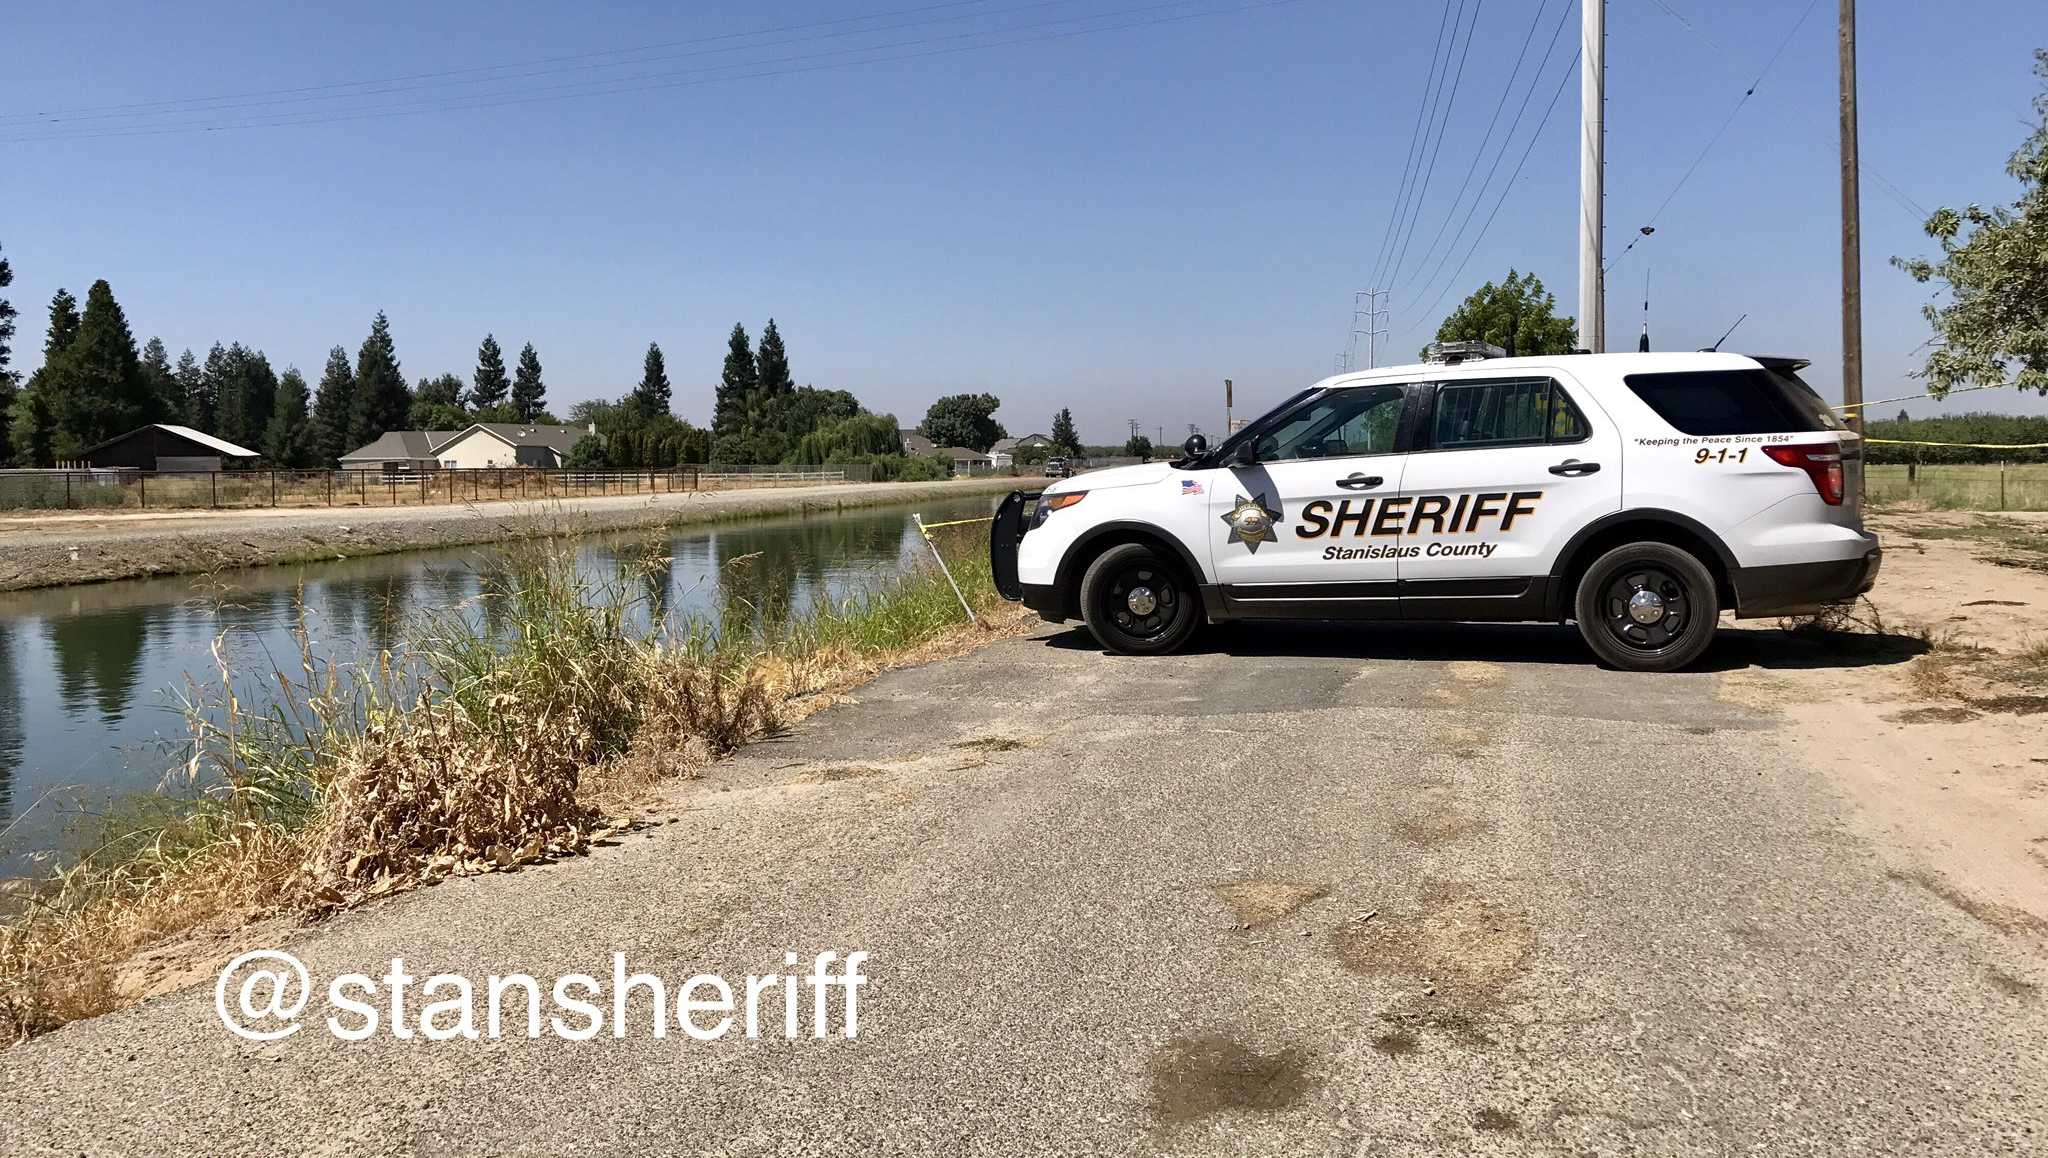 A body was found in a Turlock Irrigation District canal on Tuesday, Aug. 8, 2017, the Stanislaus County Sheriff's Department said.